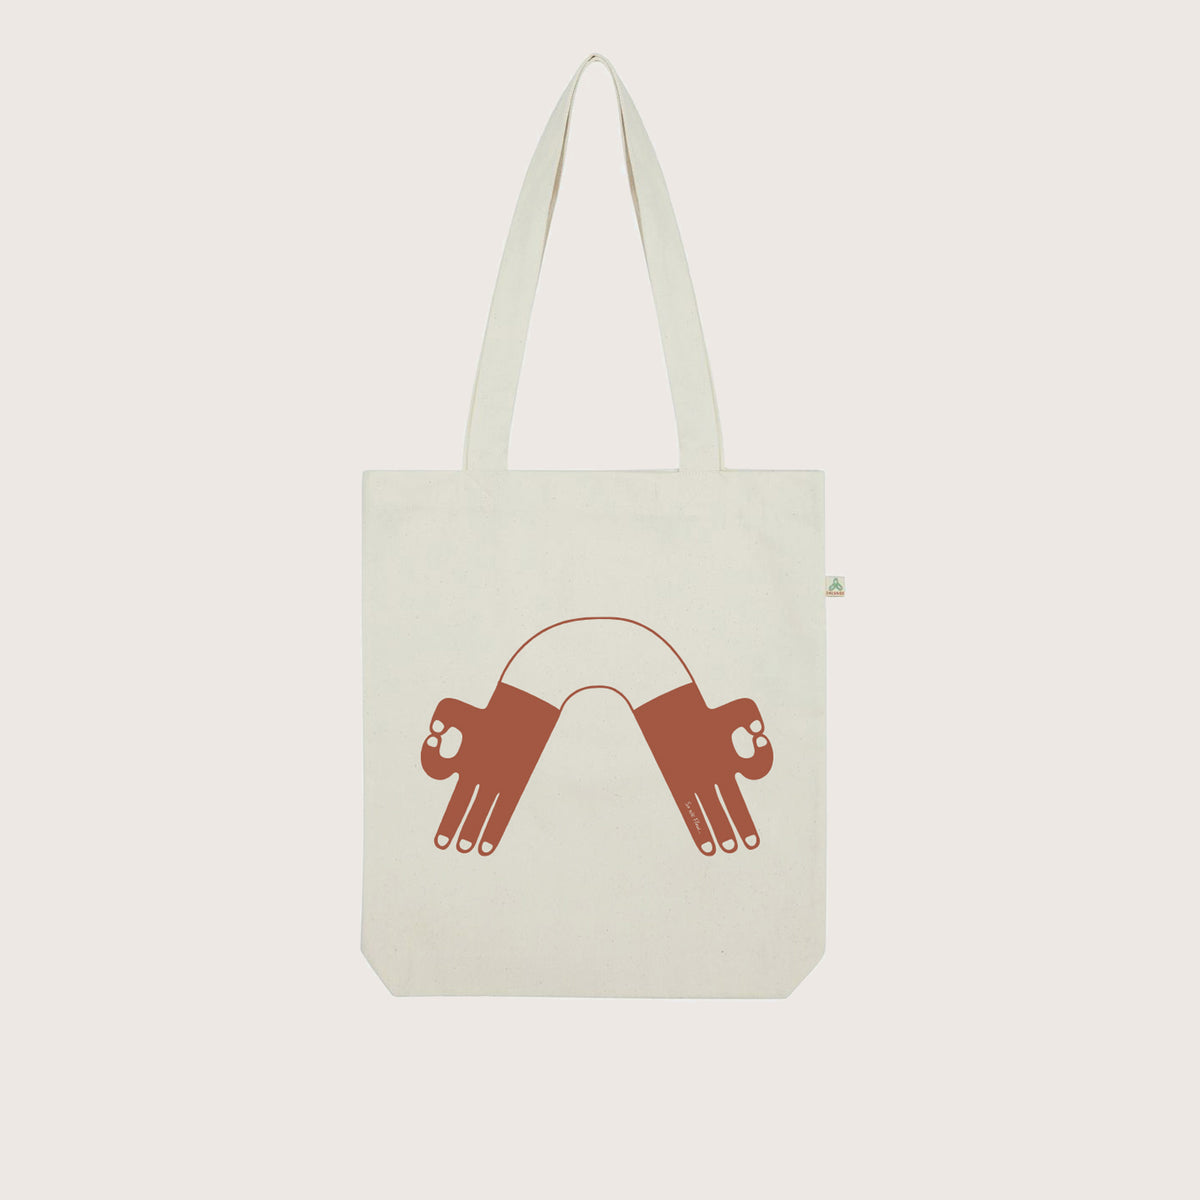 So We Flow... Recycled Plastic Bottle Tote Bag with Mudra graphic